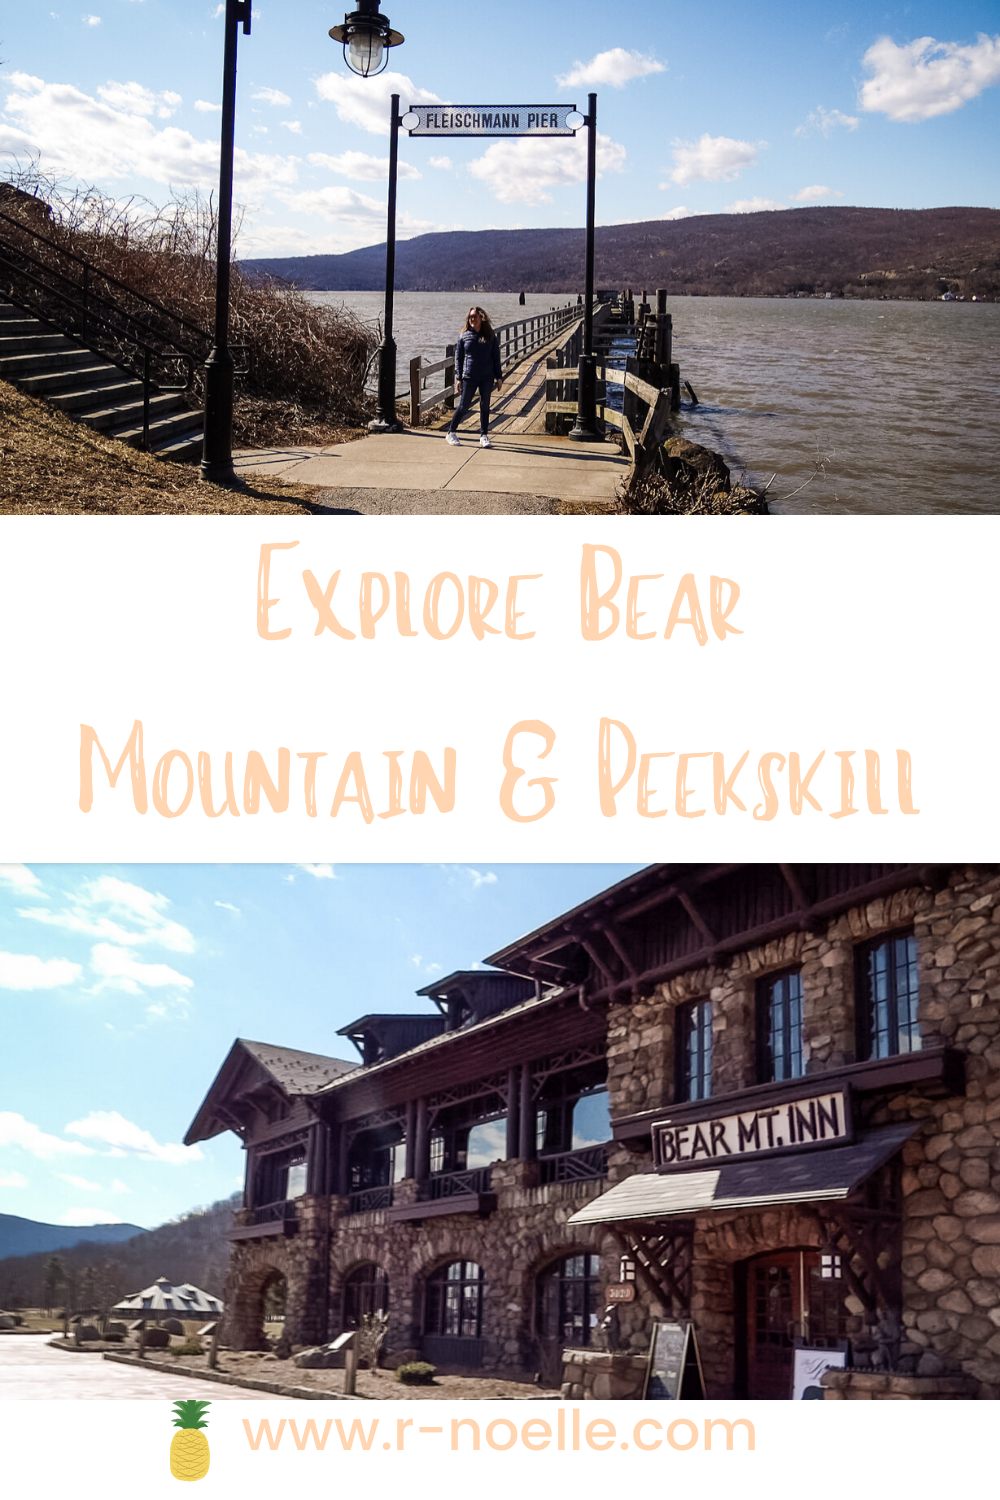 Visit Bear Mountain Inn, Hudson Valley area, and make a day of this beautiful location.